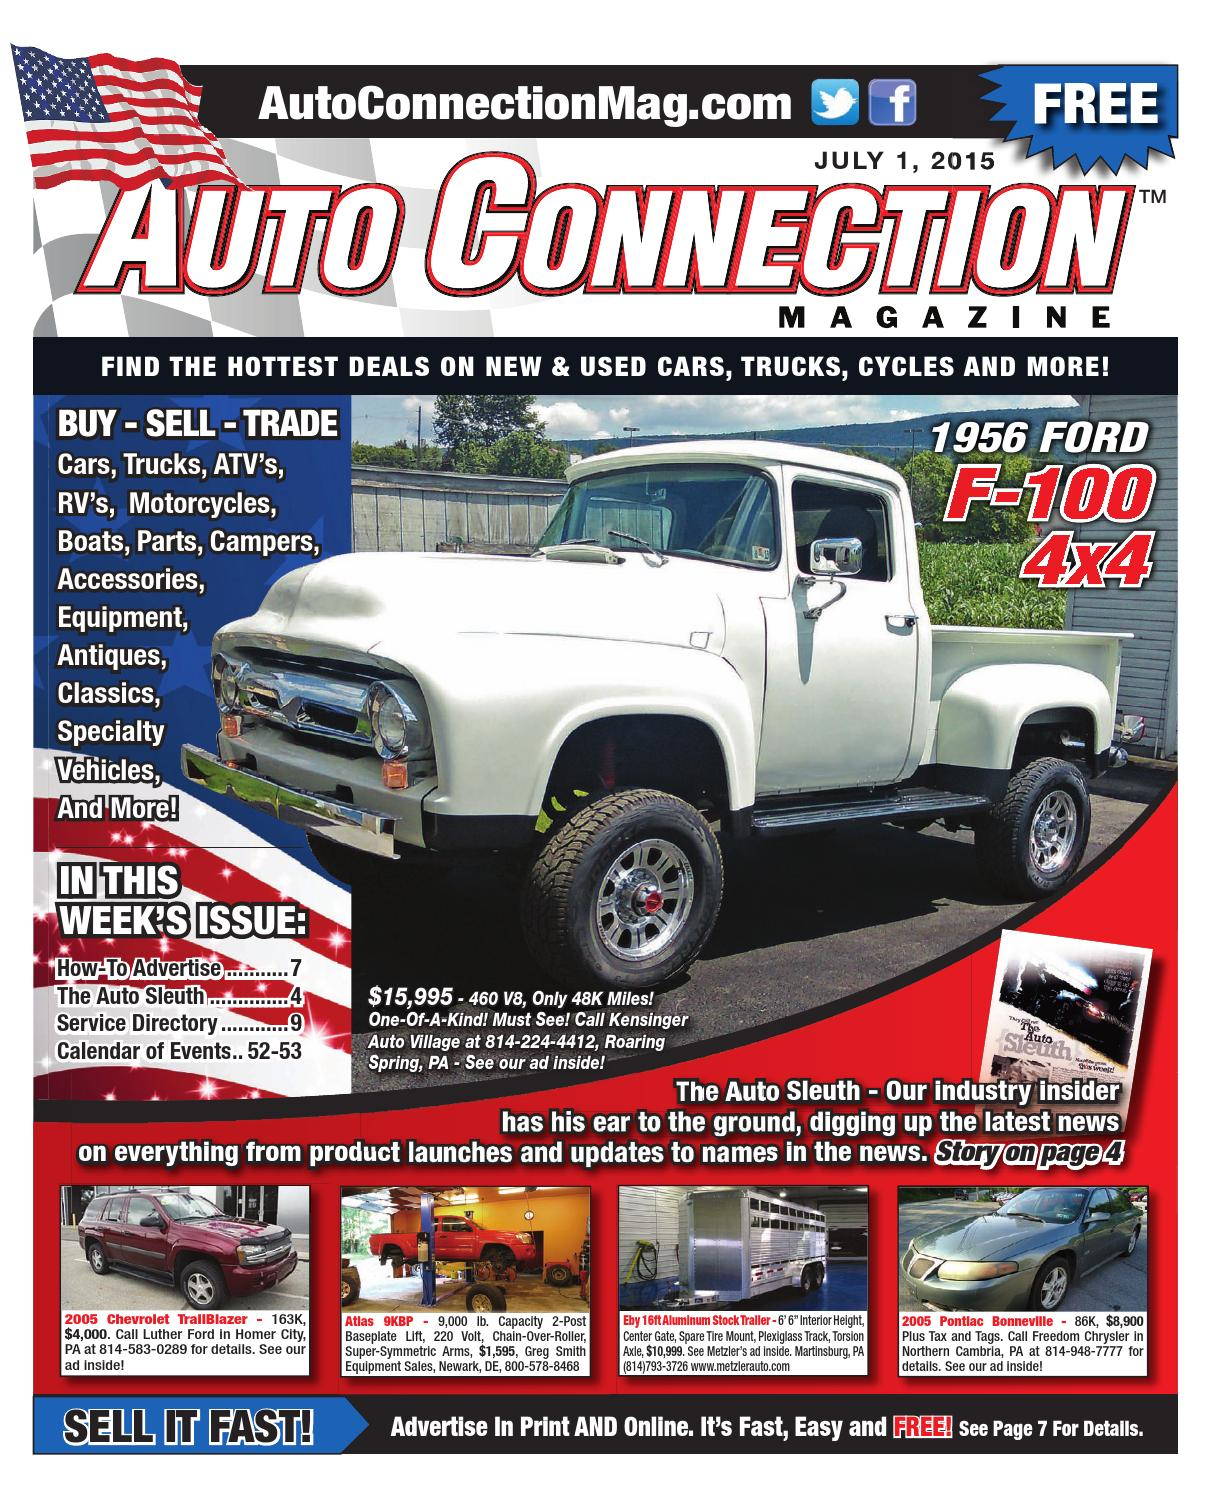 07 01 15 Auto Connection Magazine By Auto Connection Magazine Issuu